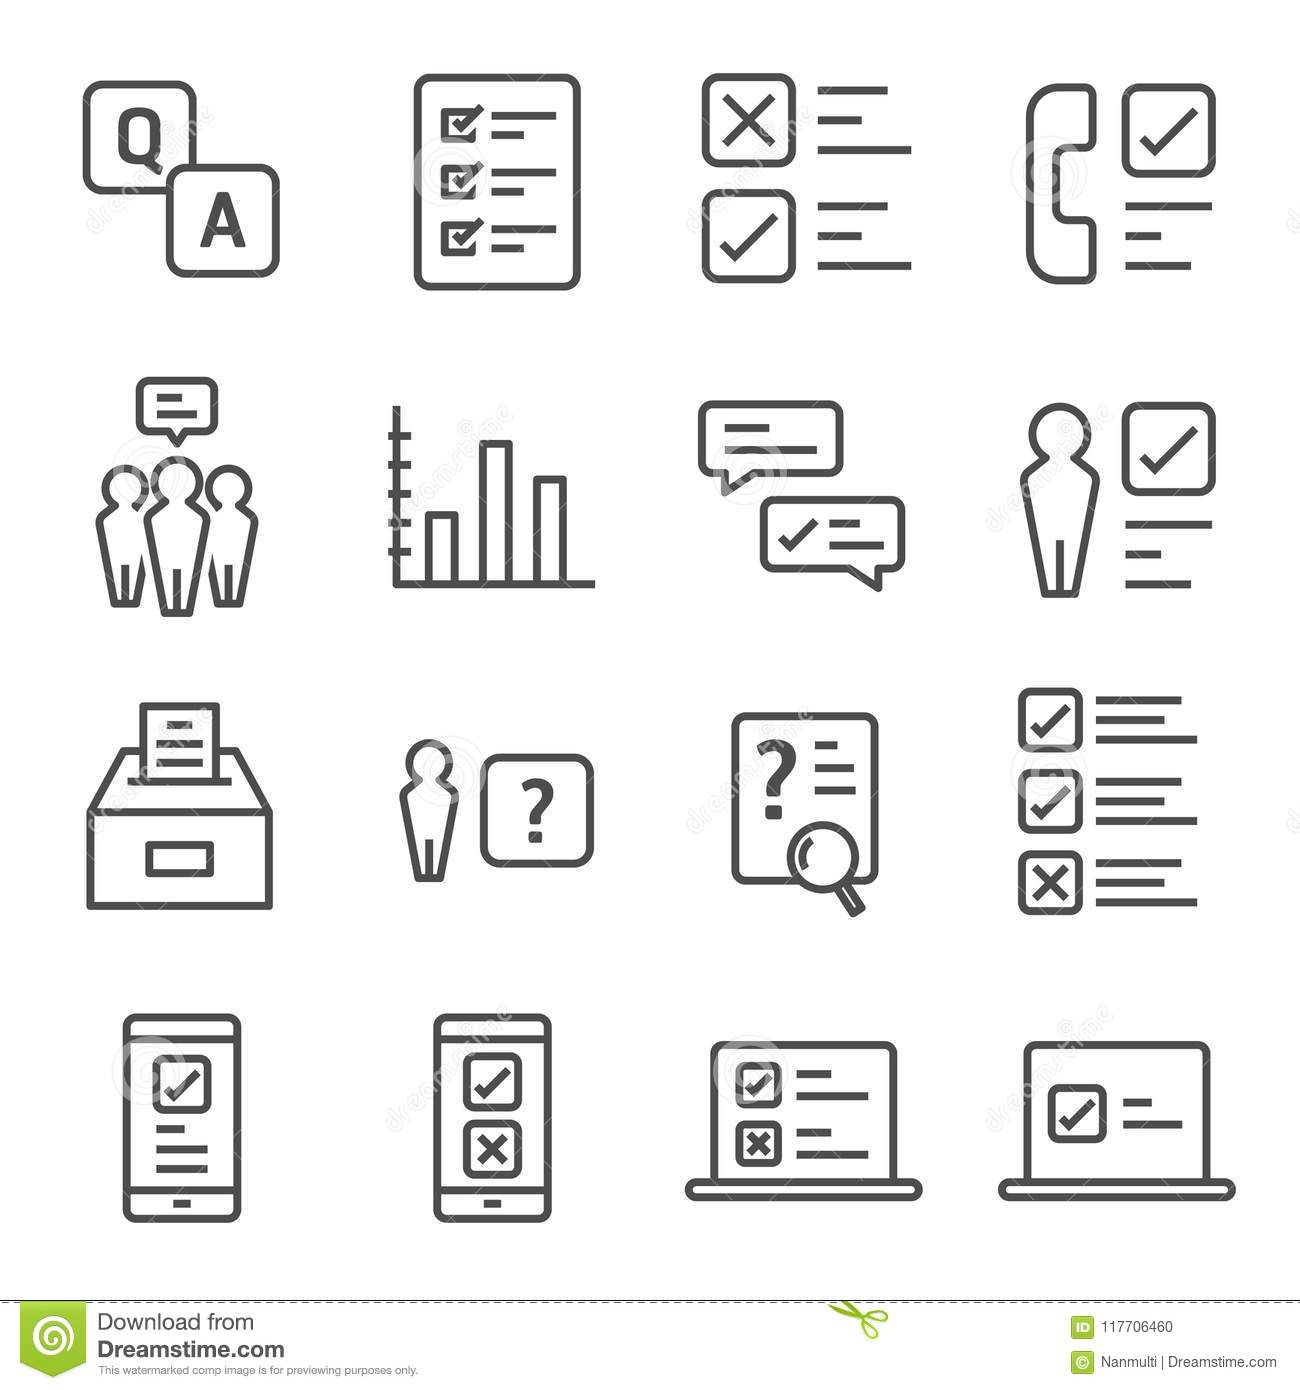 Survey and Questionnaire vector icon set. Included the icons as checklist, poll, vote, mobile, online survey, phone interview, res